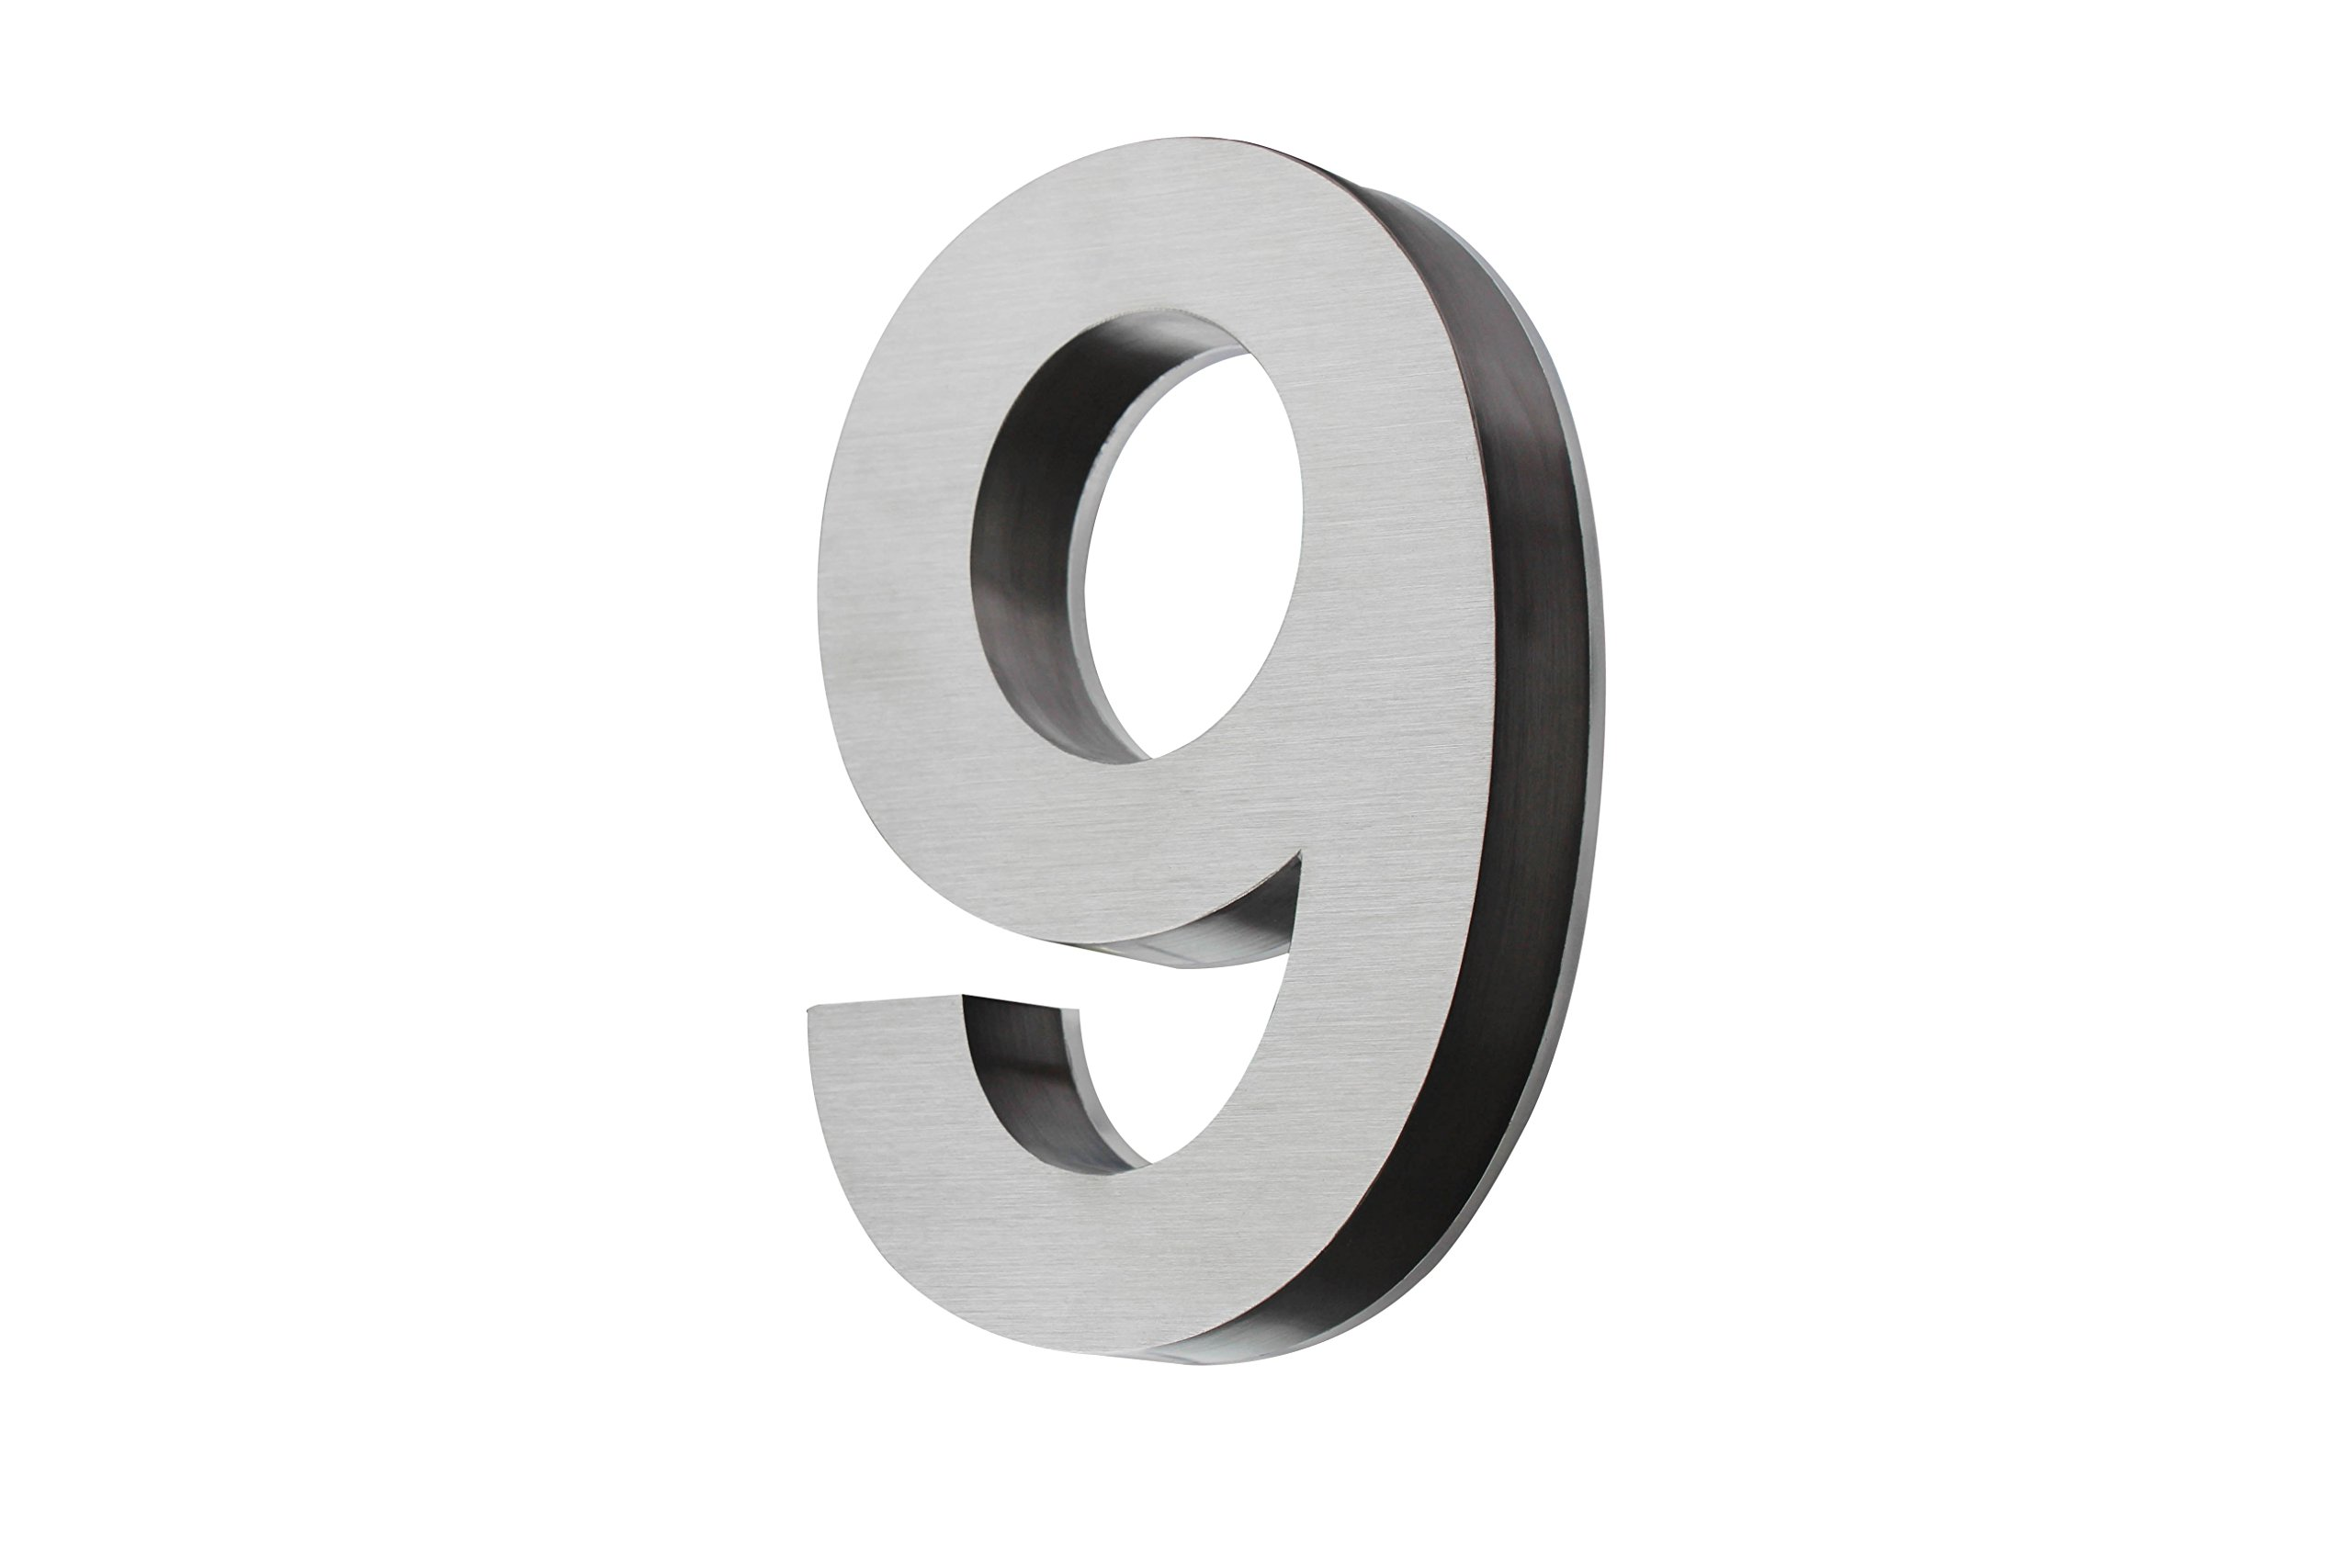 Backlit LED House Numbers (8 Inch Blue) Big, Modern Address Signs for Homes   Soft, Exterior Glow   Brushed Stainless-Steel Finish   Weather Resistant, Durable, Wired   by JELSCO (9)